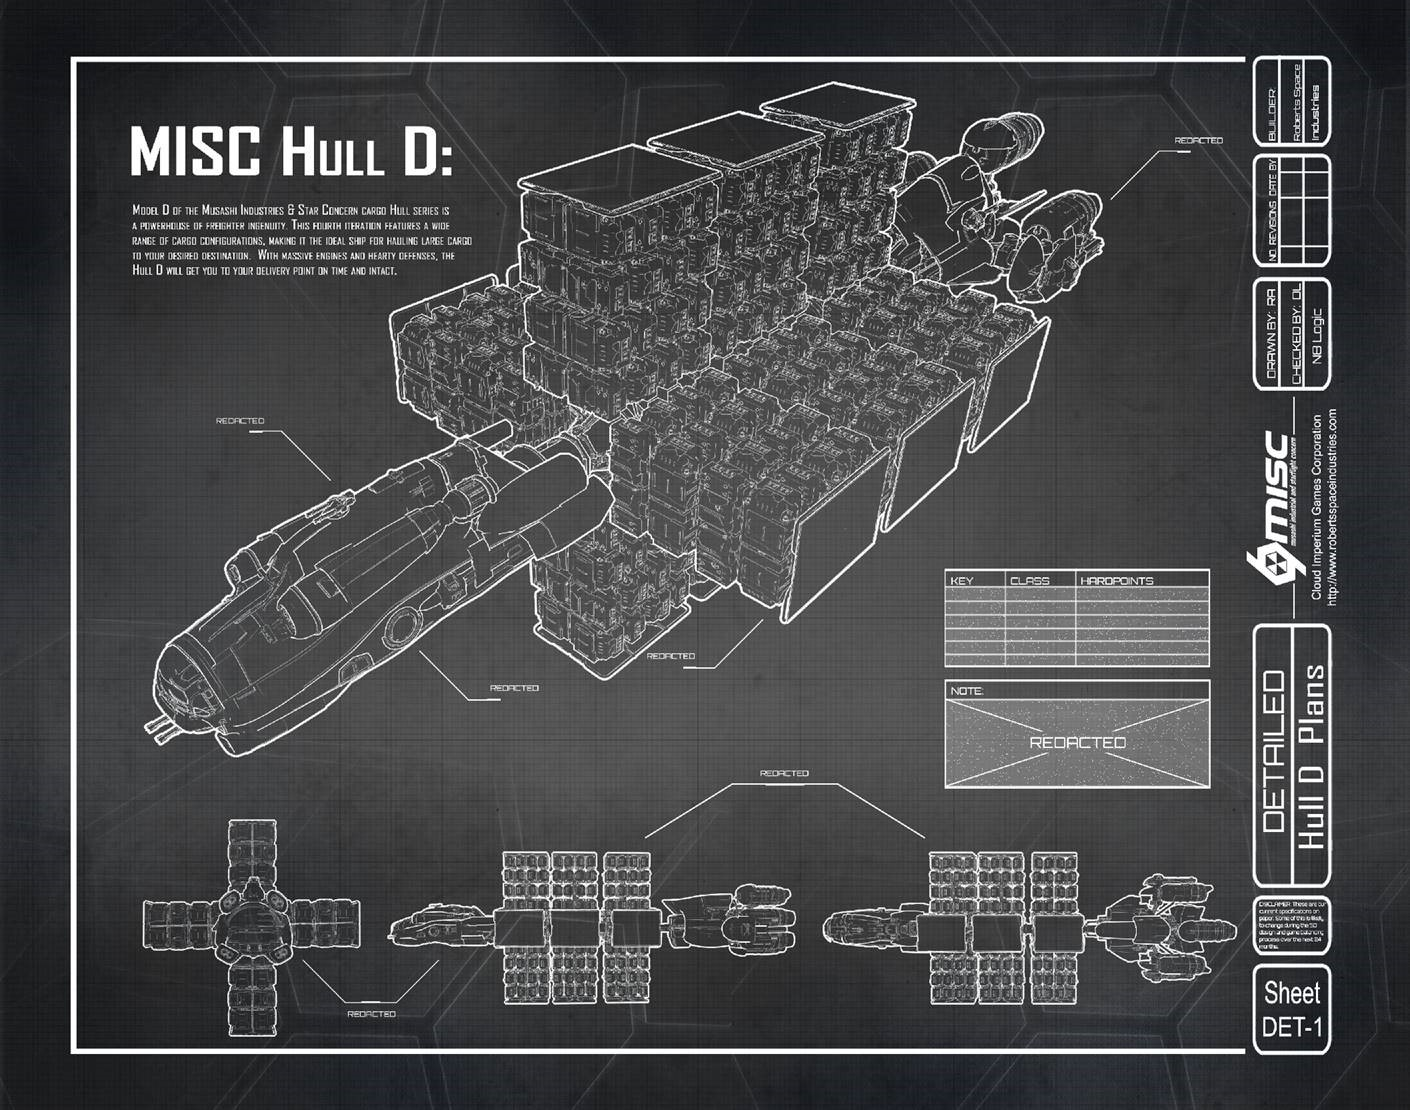 https://robertsspaceindustries.com/media/wox7k753a2pn6r/source/Hull_D_Blueprint.jpg